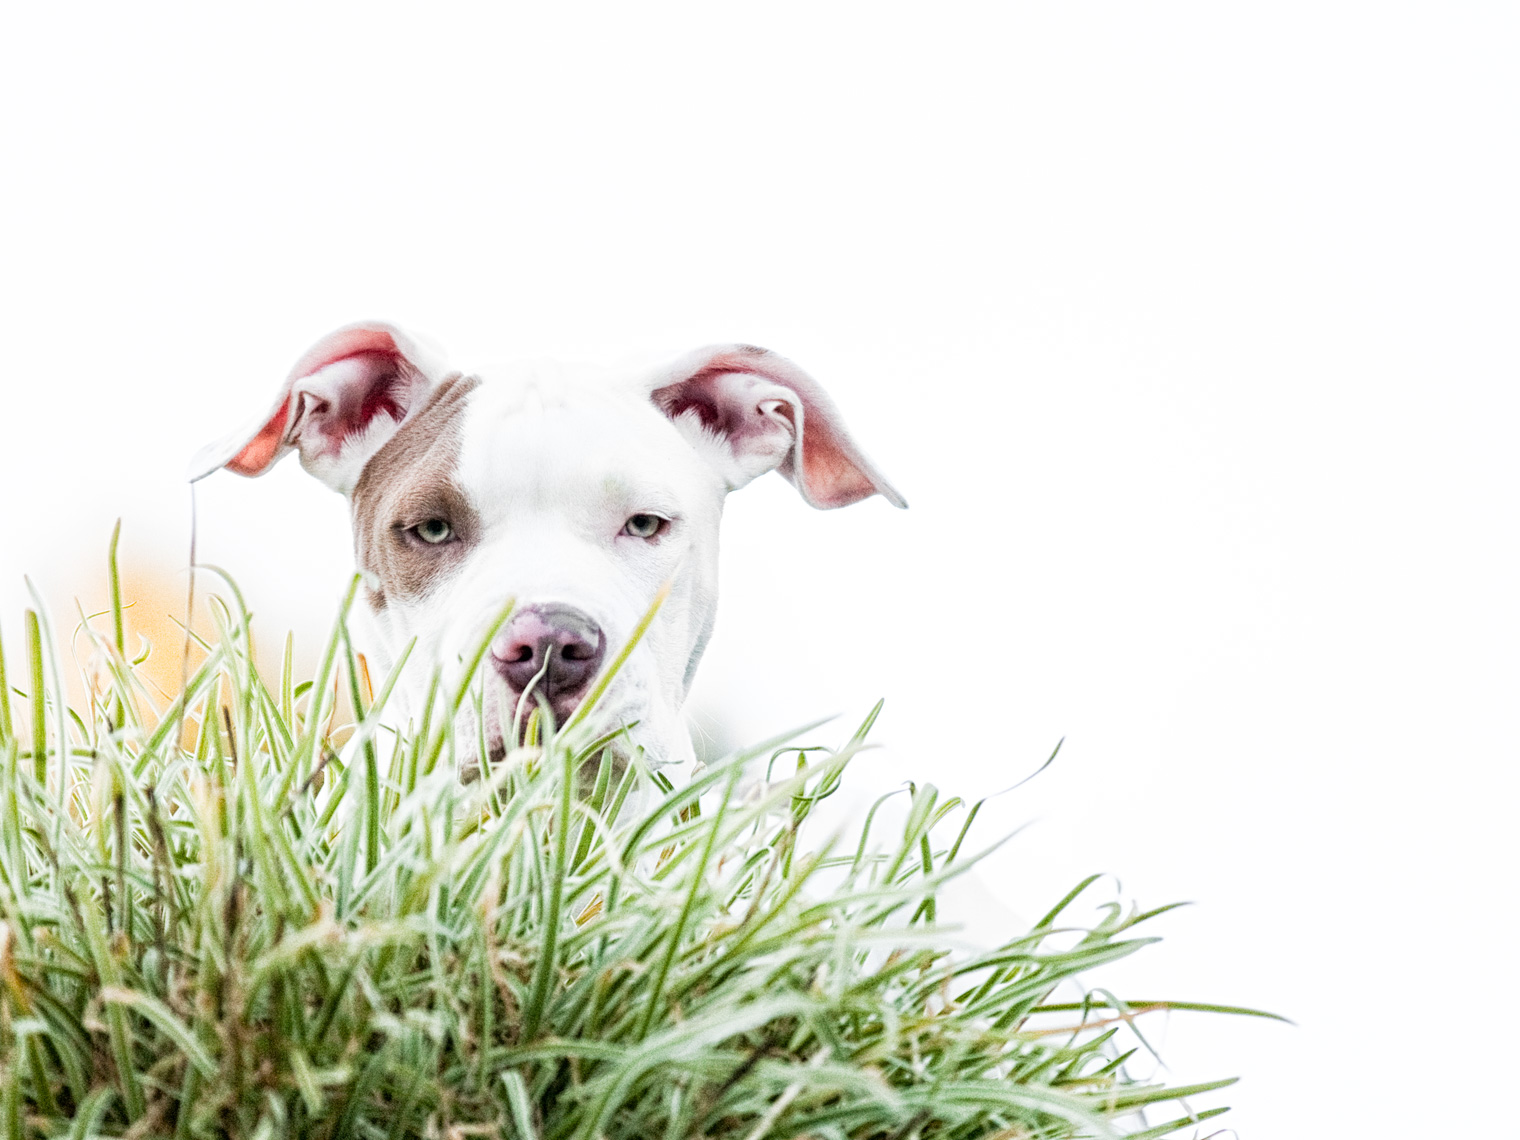 Los Angeles Dog Photography, Michael Brian, pet, cat, White Pit Bull puppy peaking up over patch of grass